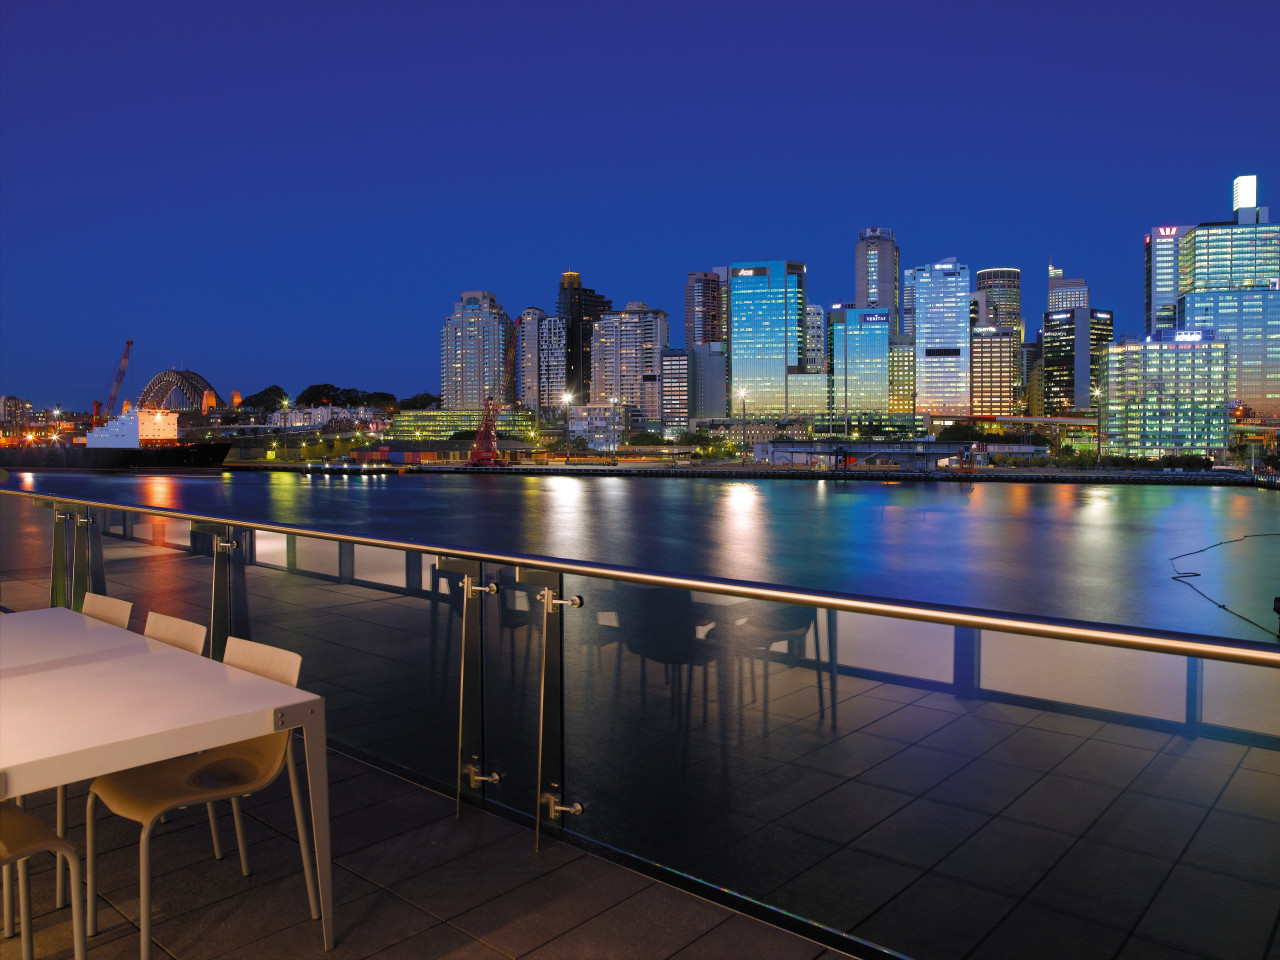 view from the sunders wharf apartments looking at apartment, architecture, city, cityscape, condominium, downtown, dusk, evening, home, lighting, metropolis, metropolitan area, night, real estate, reflection, residential area, roof, sky, skyline, skyscraper, tower block, urban area, water, blue, black